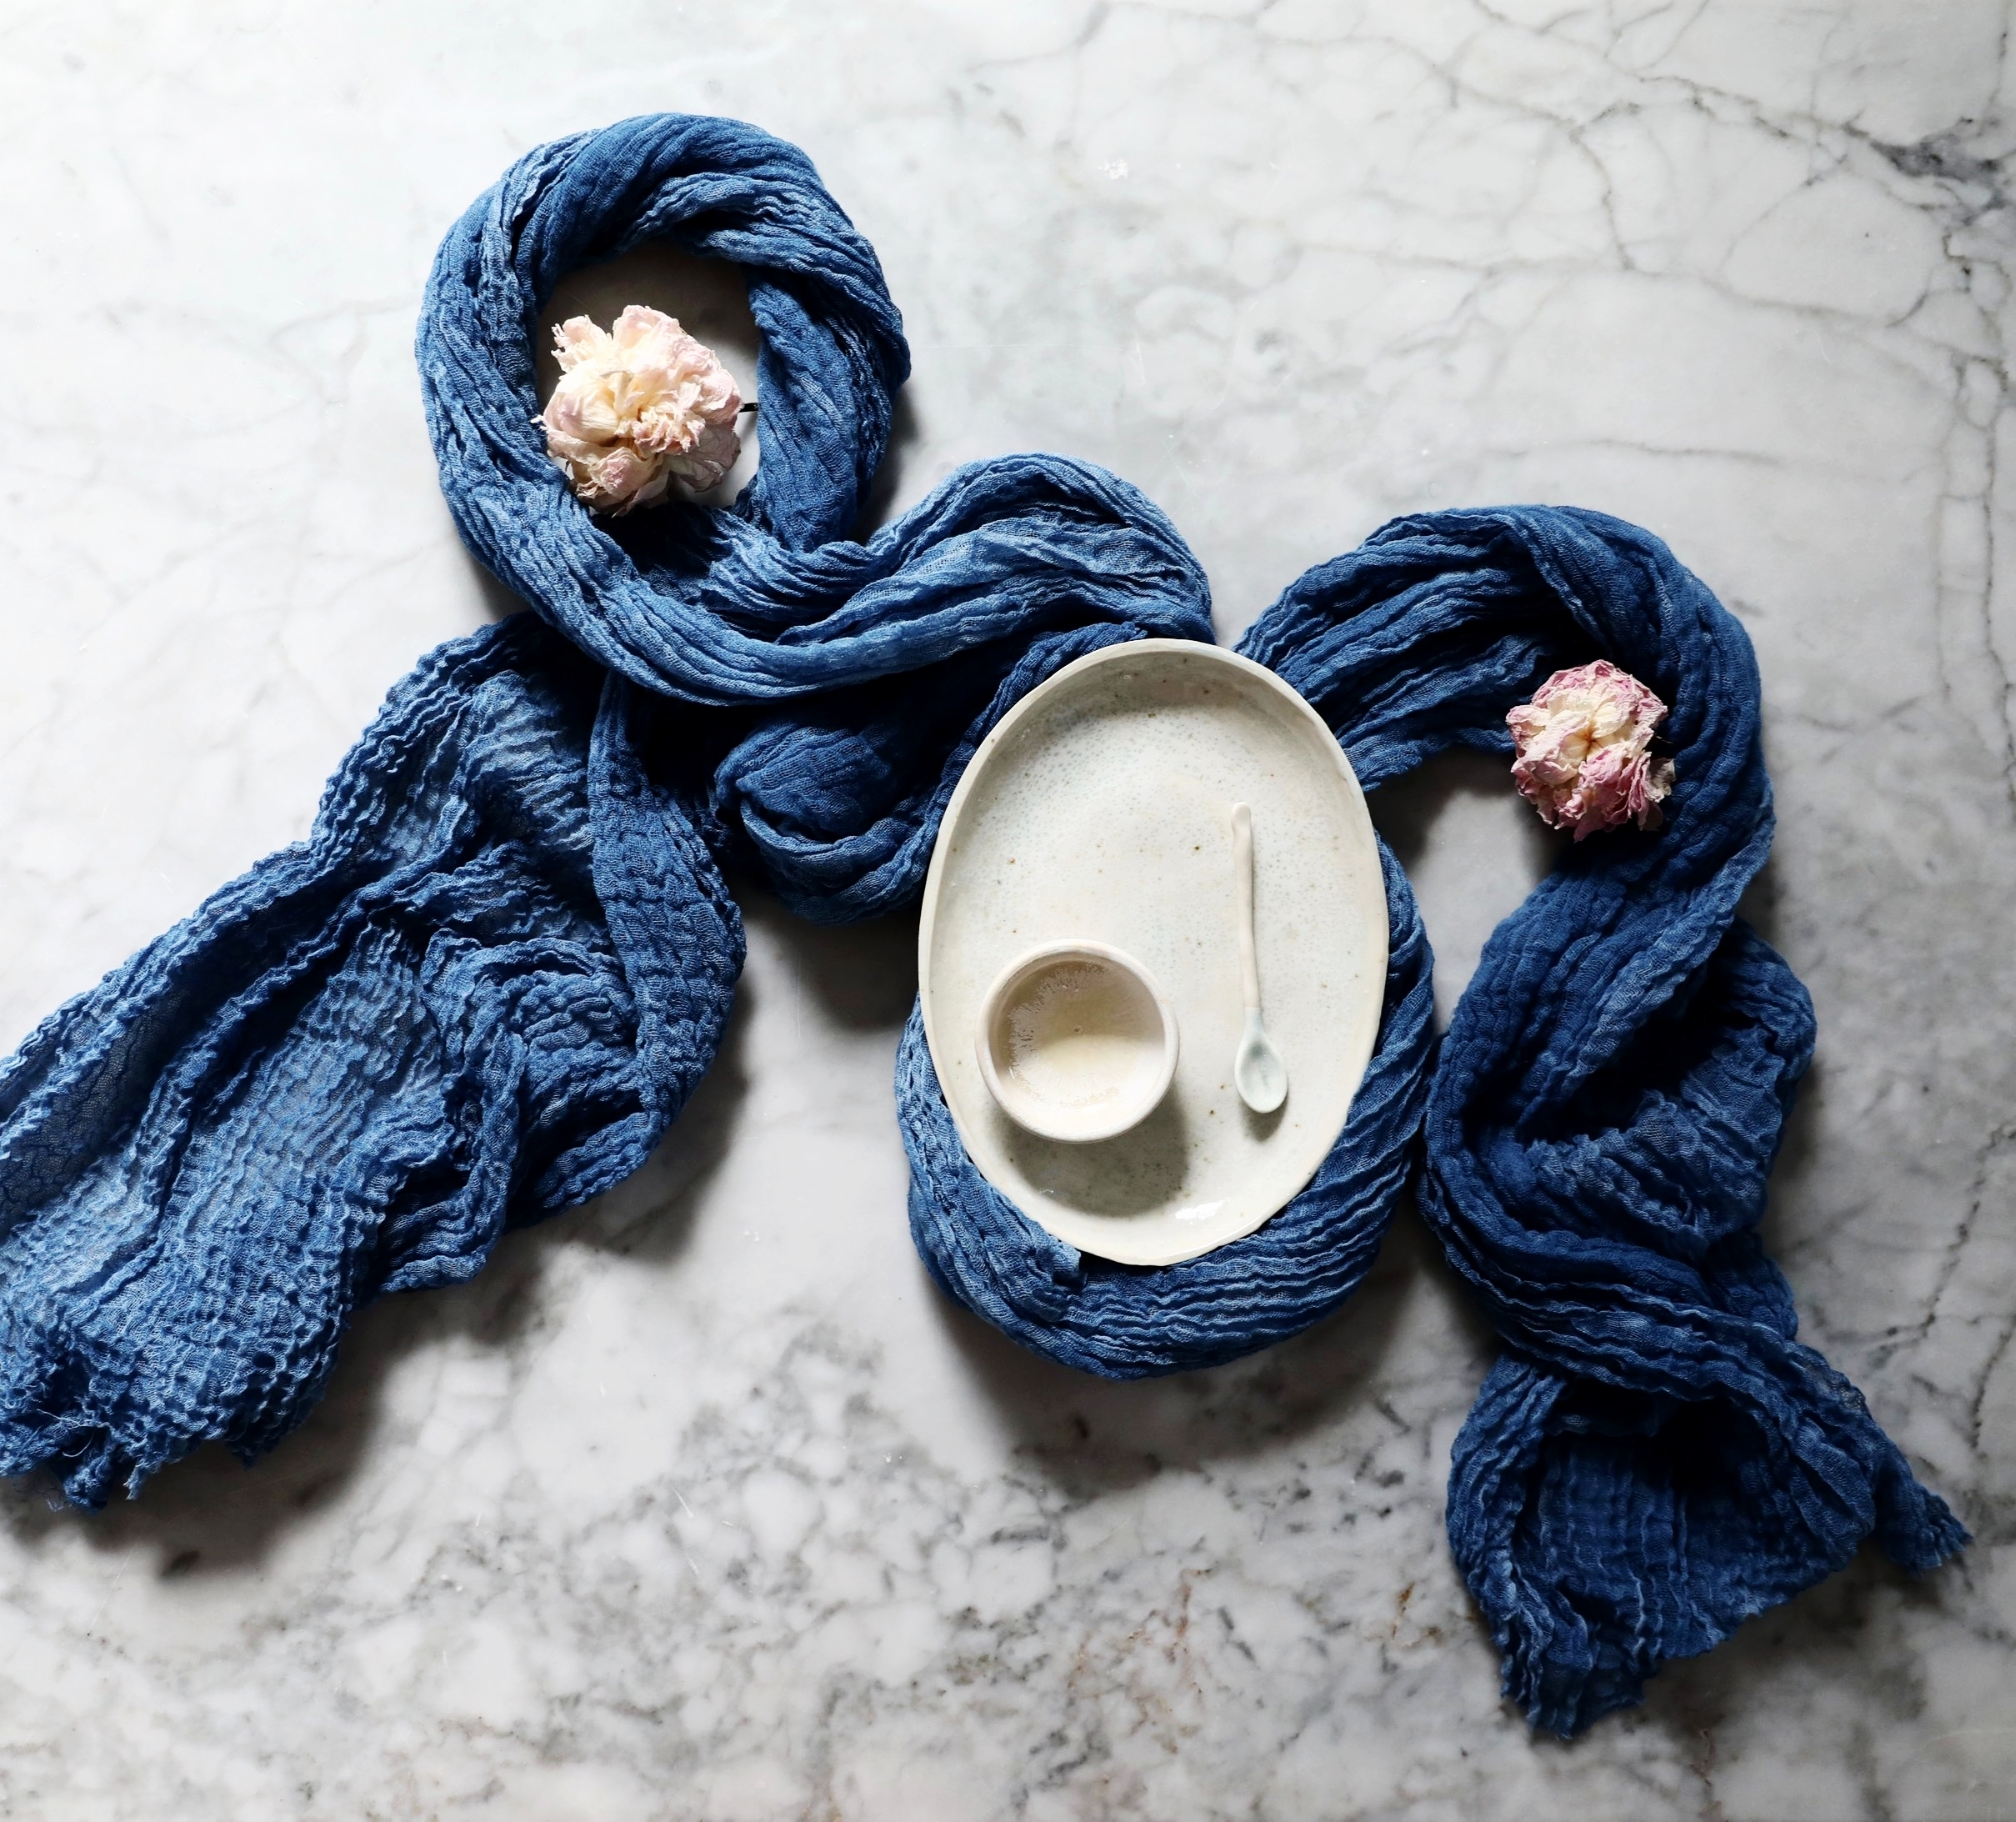 TABLE LINENS - naturally dyed textiles for your table